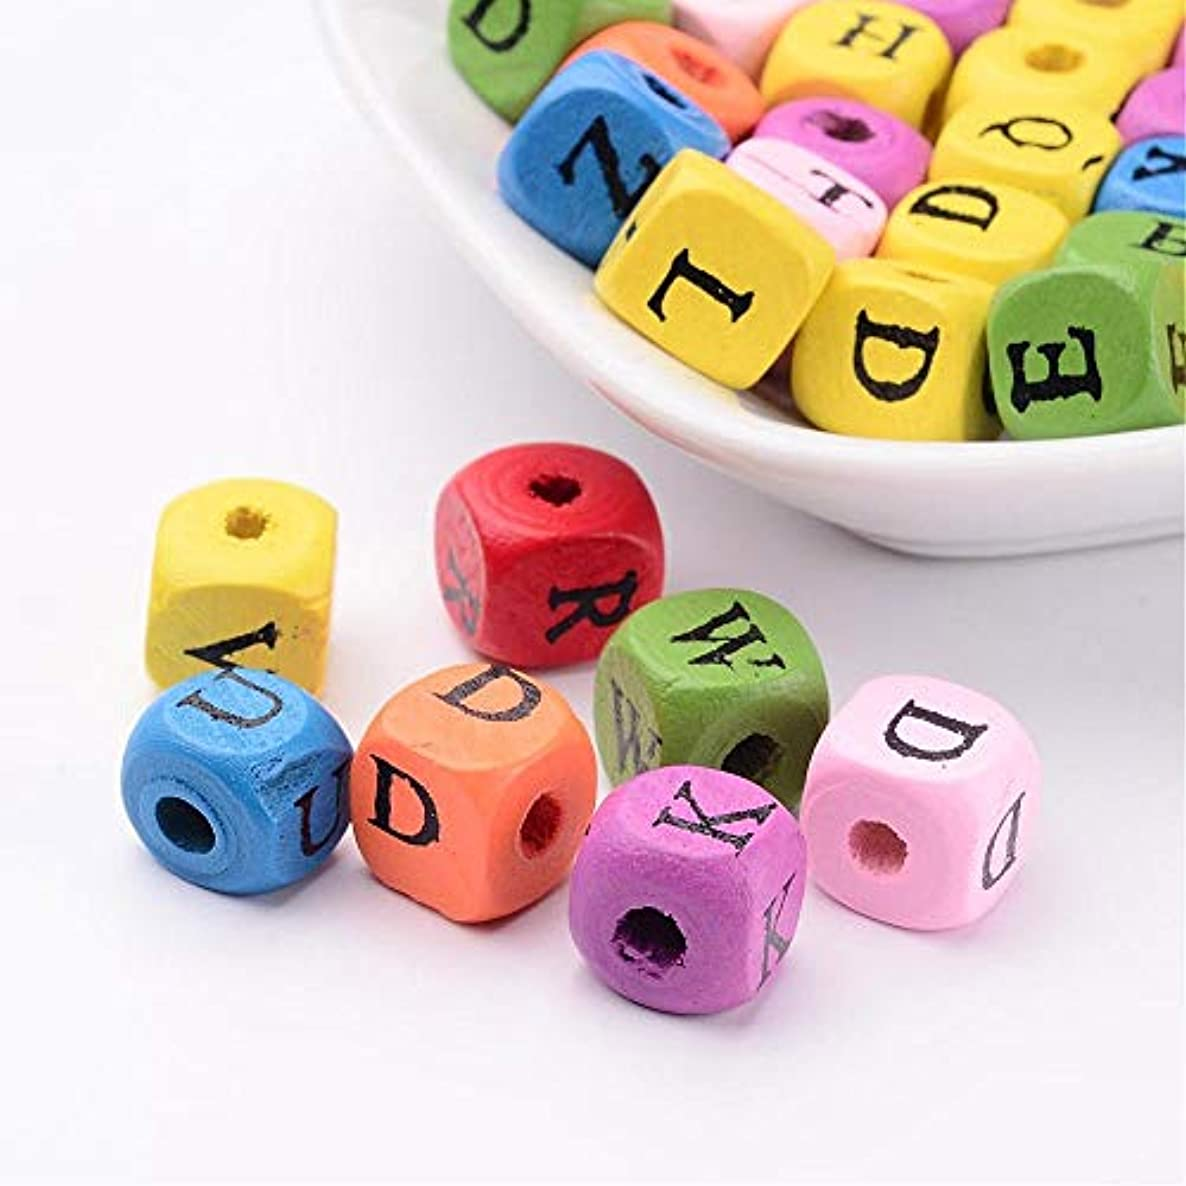 PEPPERLONELY Brand 50PC Mixed Alphabet Letter Cube Dyed Wood Beads 10x10mm